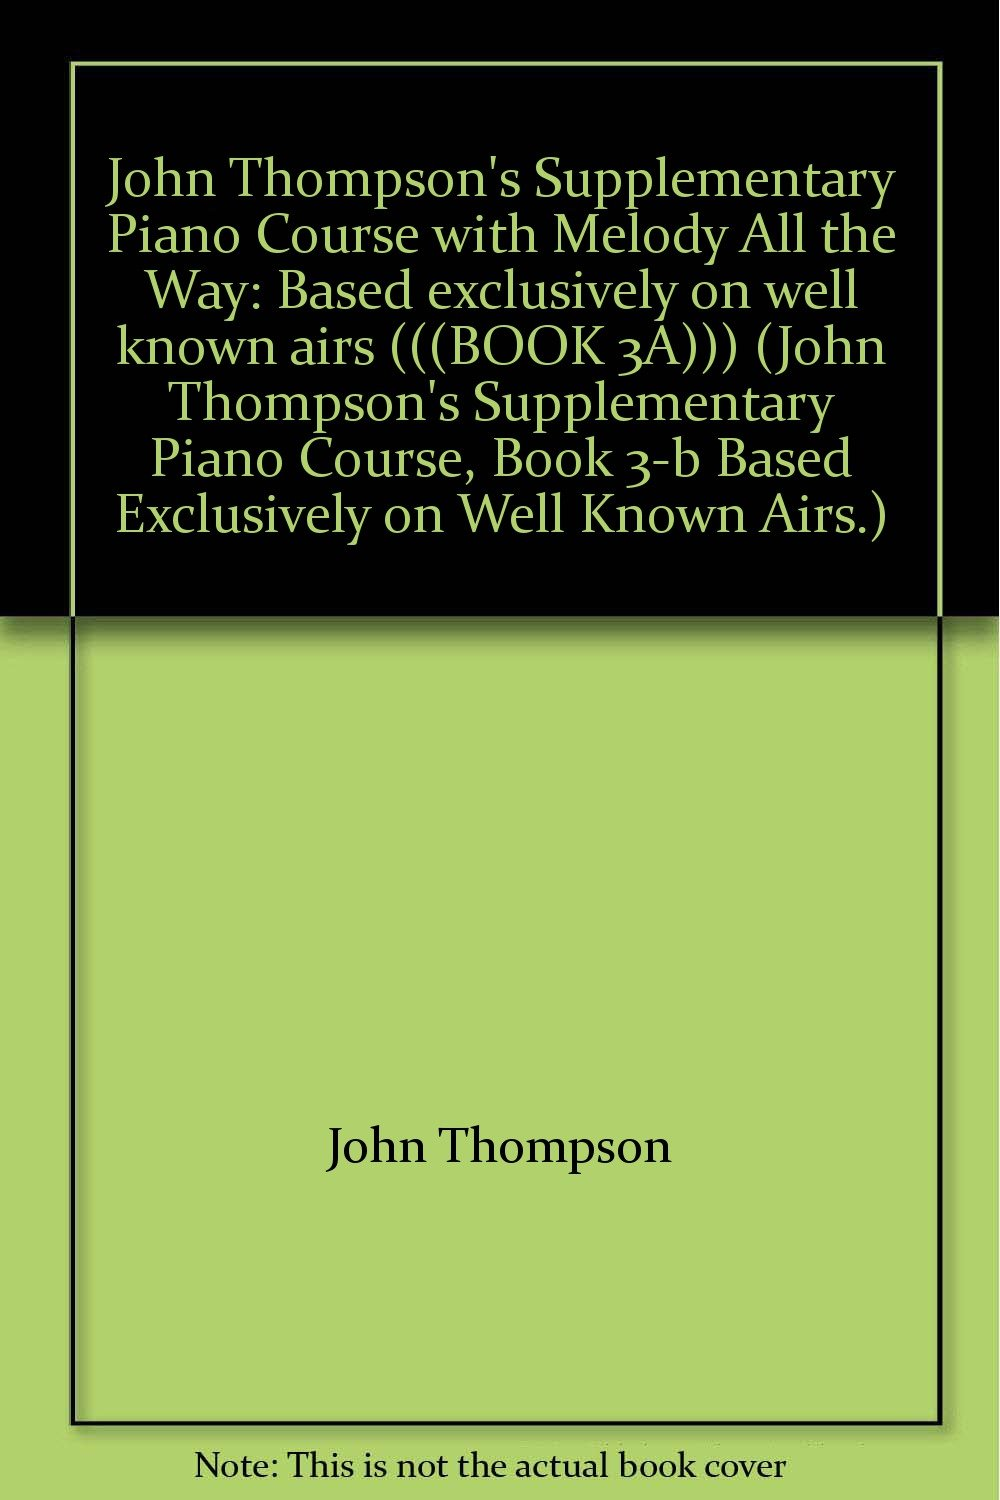 john thompsons supplementary piano course with melody all the way based exclusively on well known airs book 3a john thompsons supplementary piano course book 3 b based exclusively on well known airs